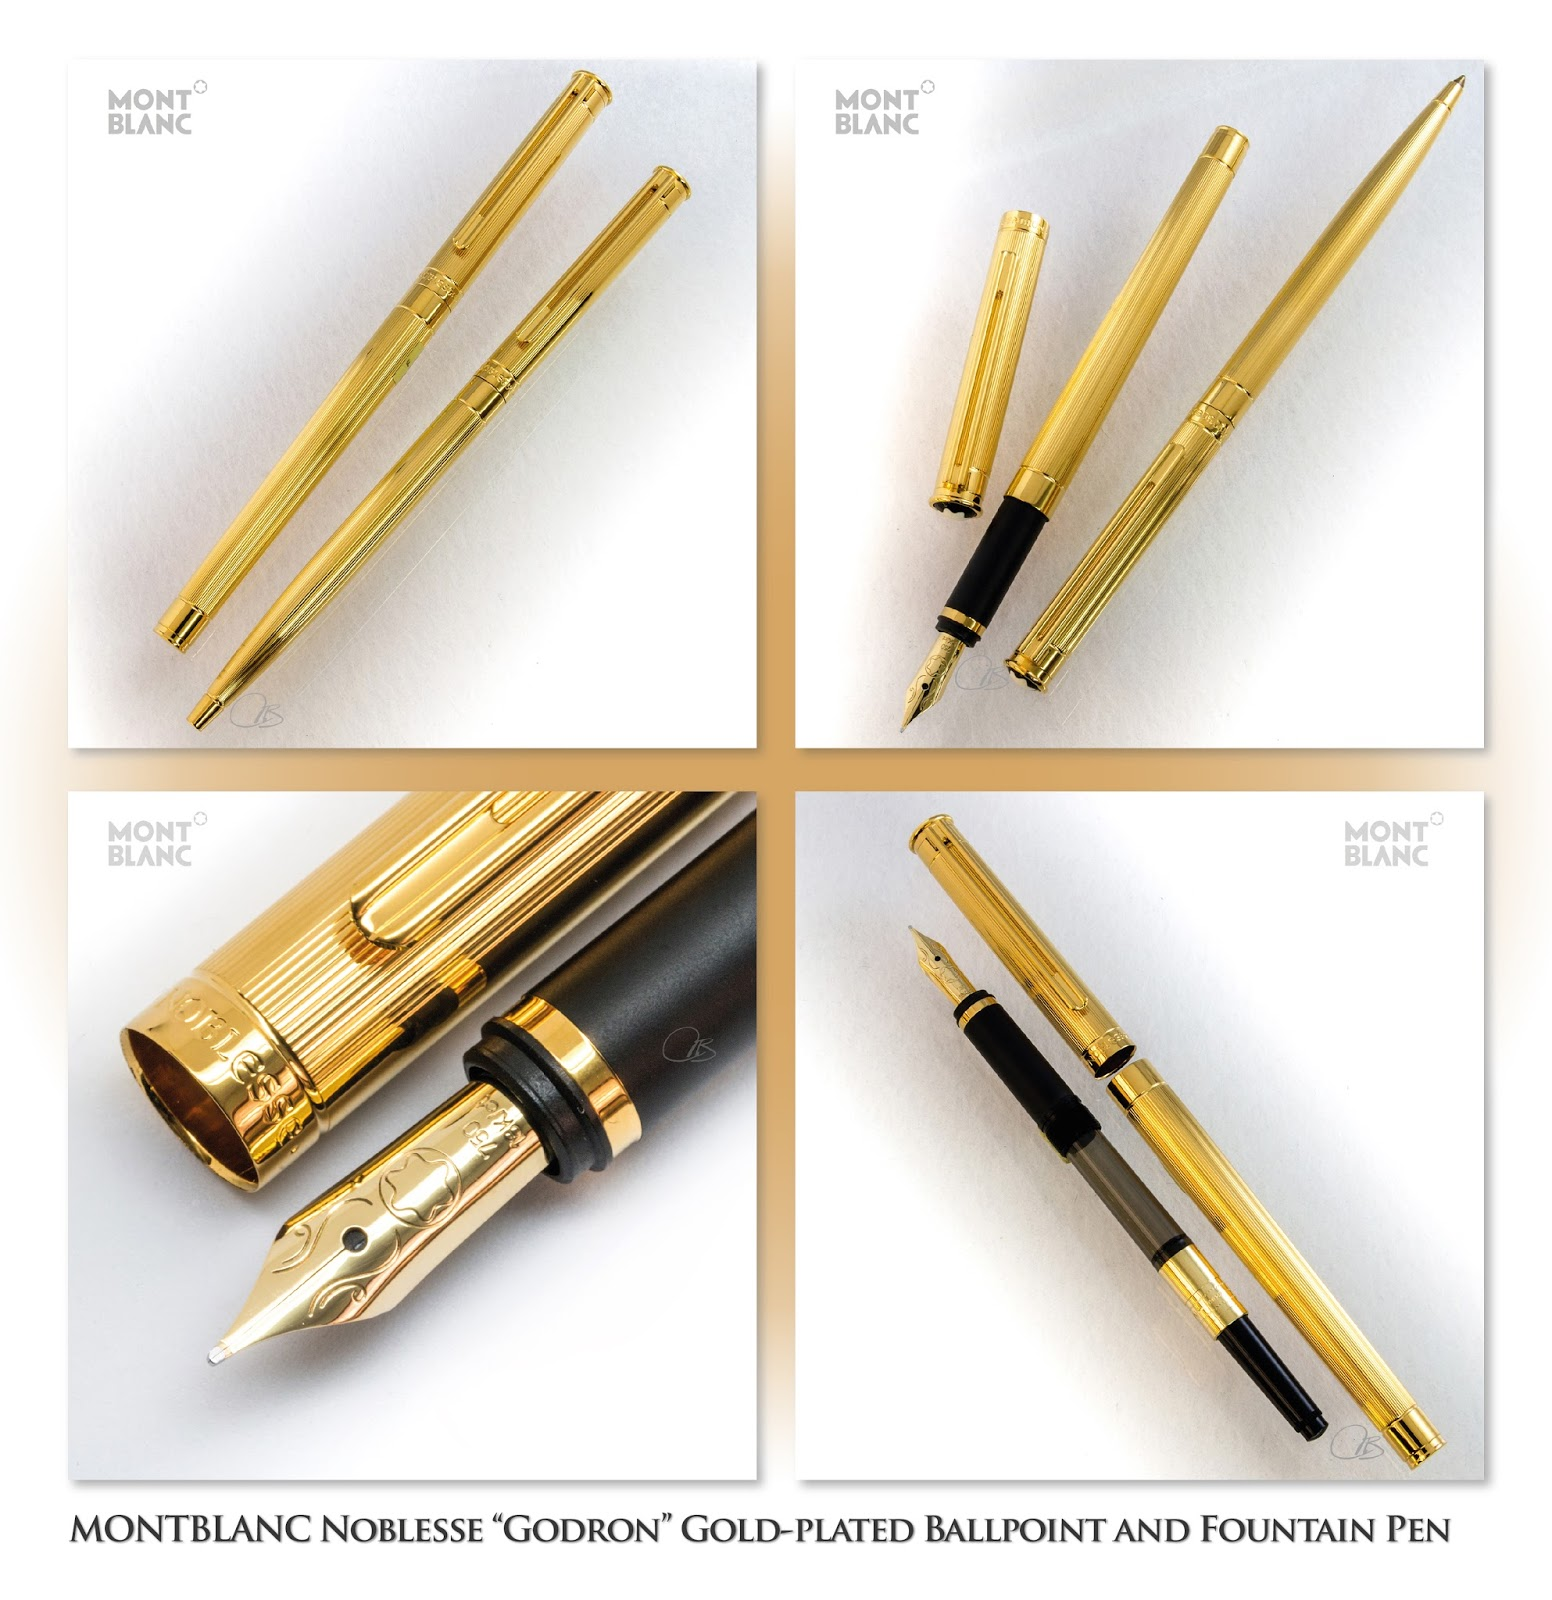 Mont Blanc Noblesse Fountain Pen from the 1970s